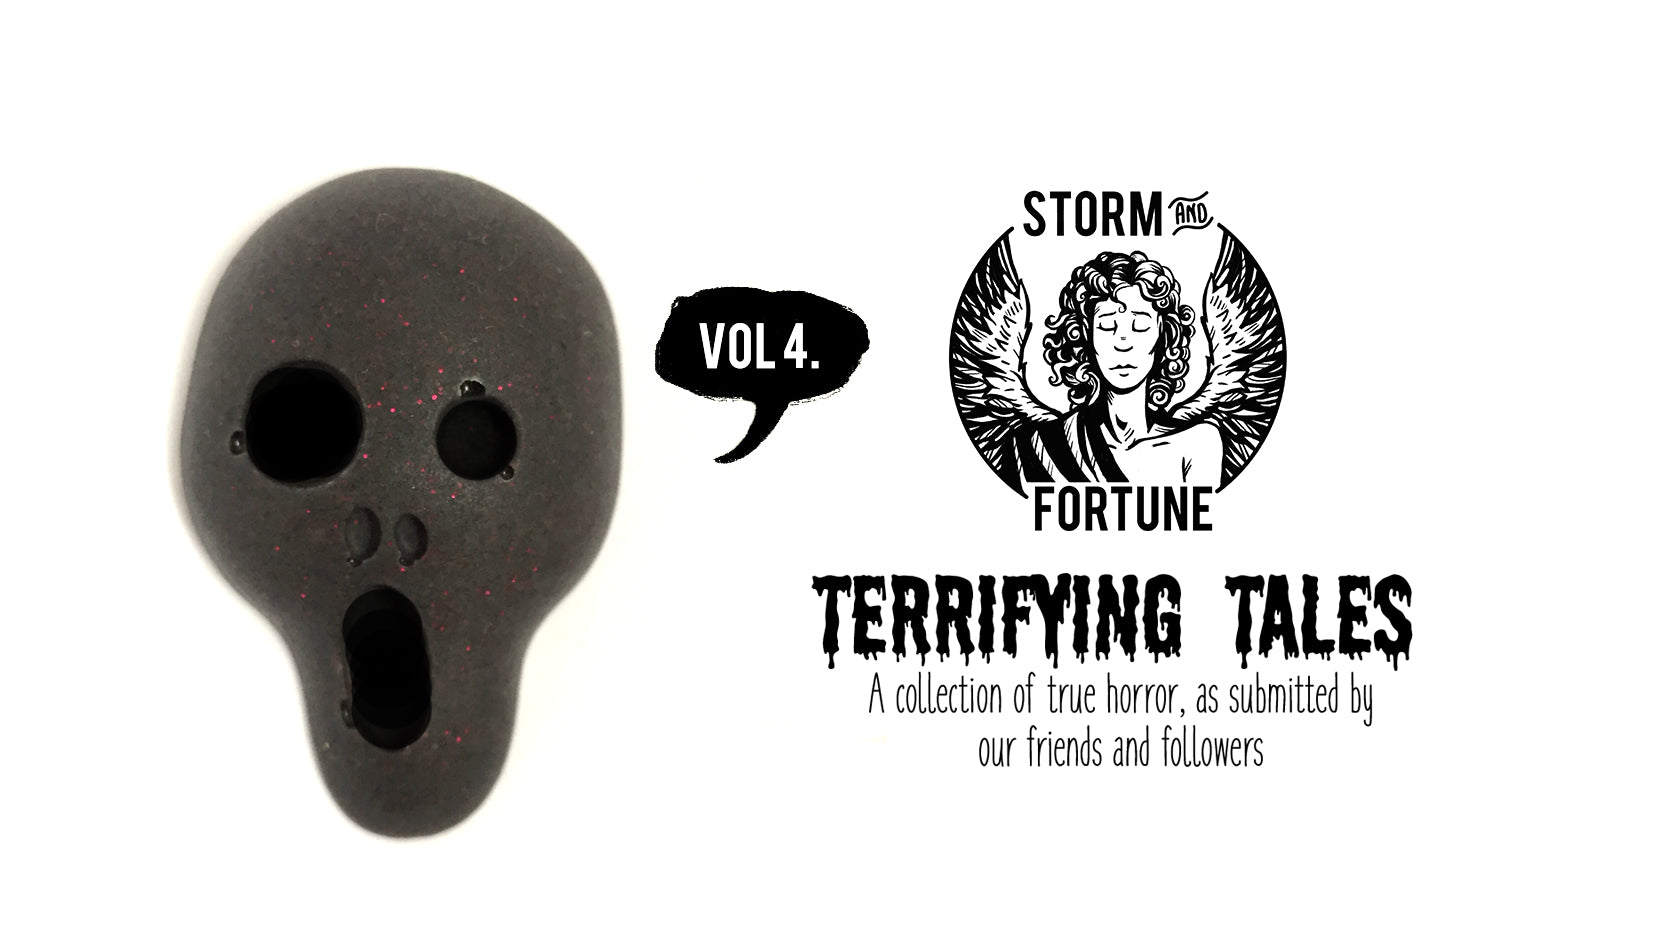 Terrifying tales vol 4